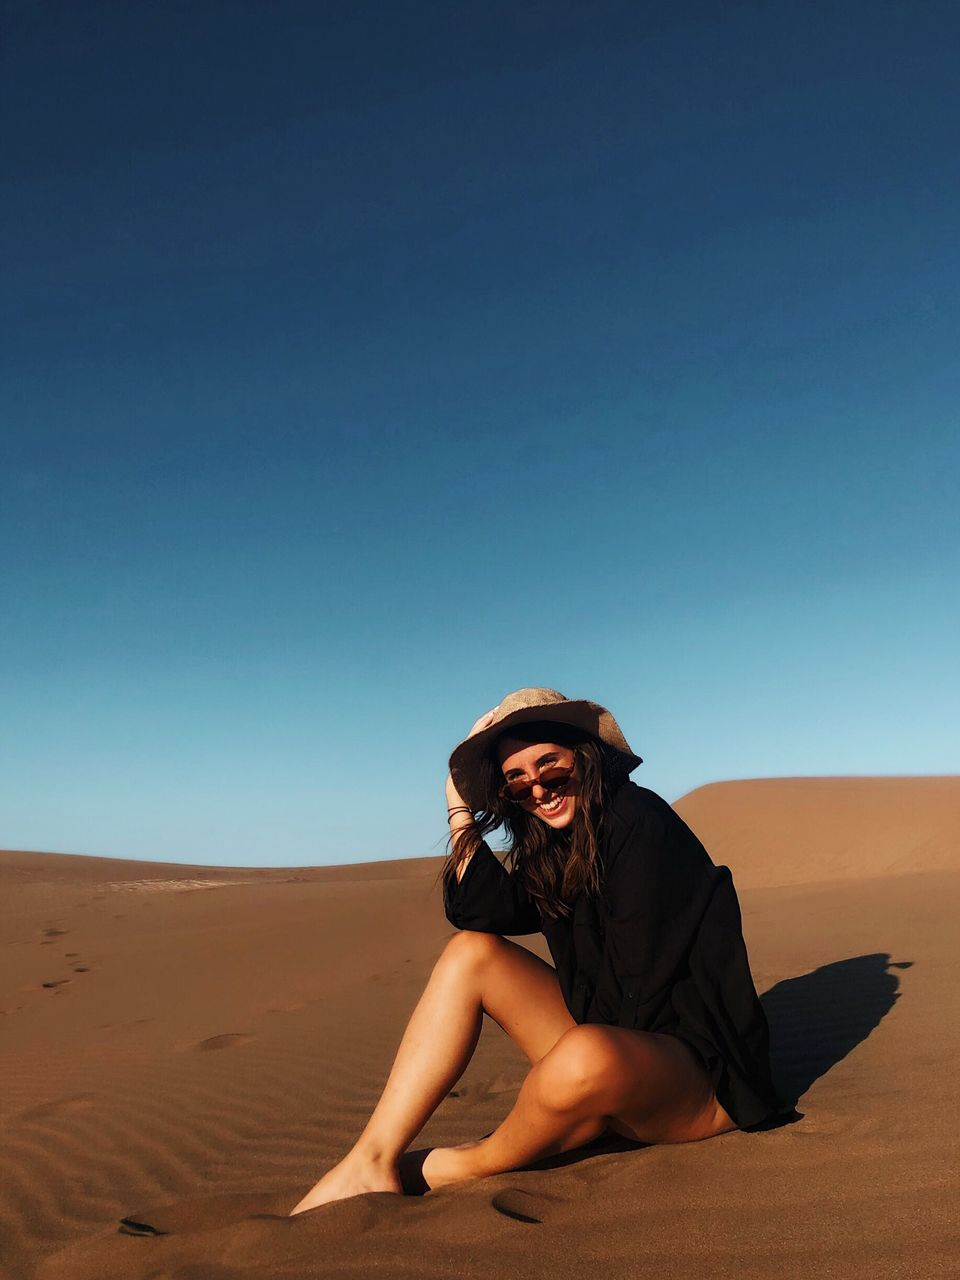 sky, land, desert, sand, one person, lifestyles, real people, sand dune, full length, young women, clear sky, leisure activity, young adult, landscape, copy space, nature, blue, sitting, sunlight, arid climate, climate, outdoors